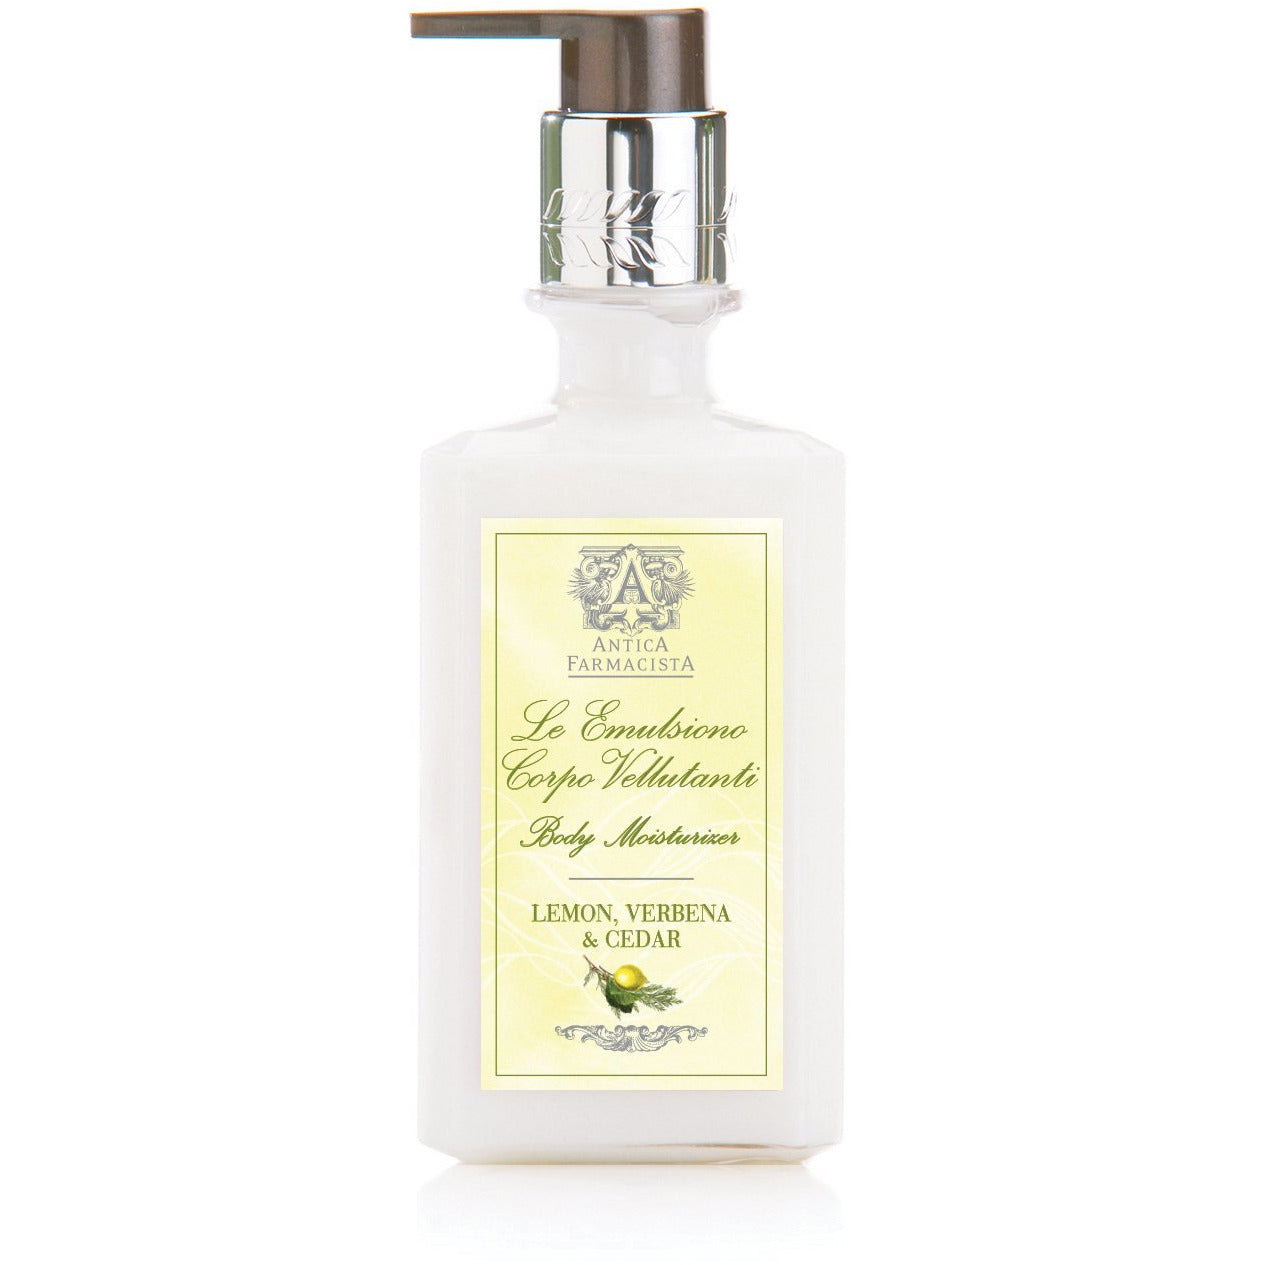 Antica Farmacista - 10OZ BODY MOISTURIZER  Lemon, Verbena & Cedar